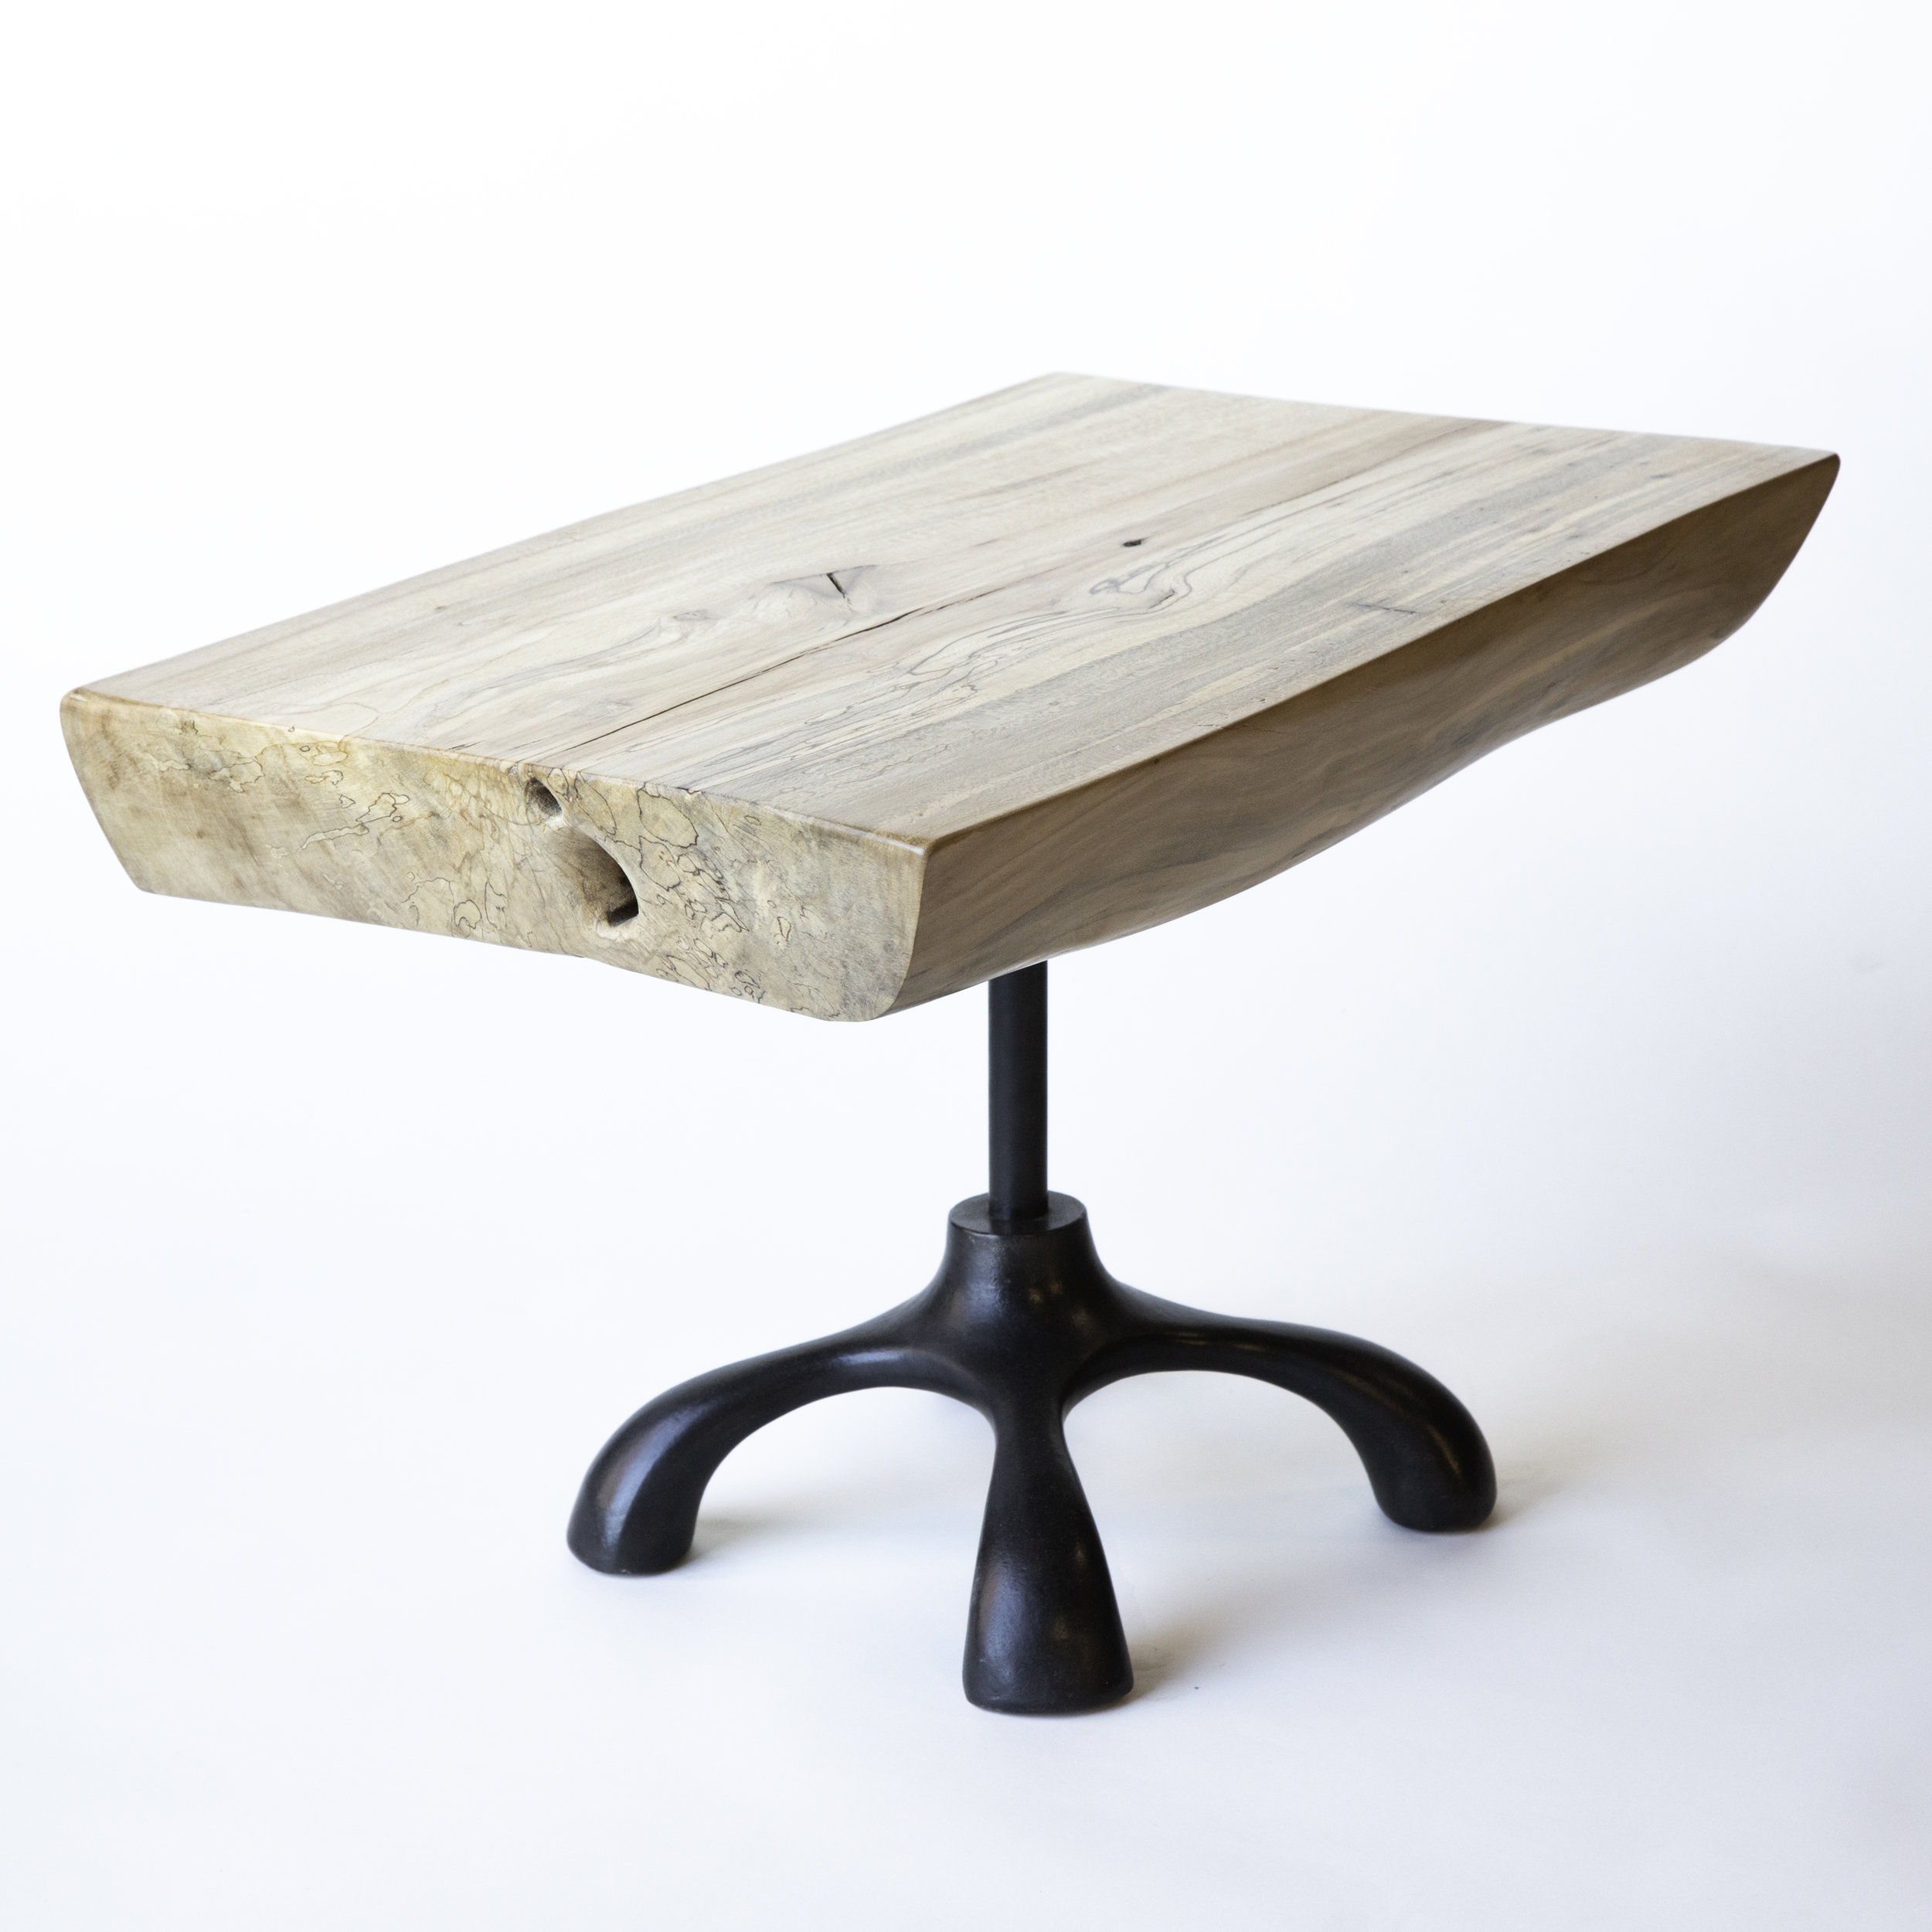 Chunk Sycamore Table 3.jpg